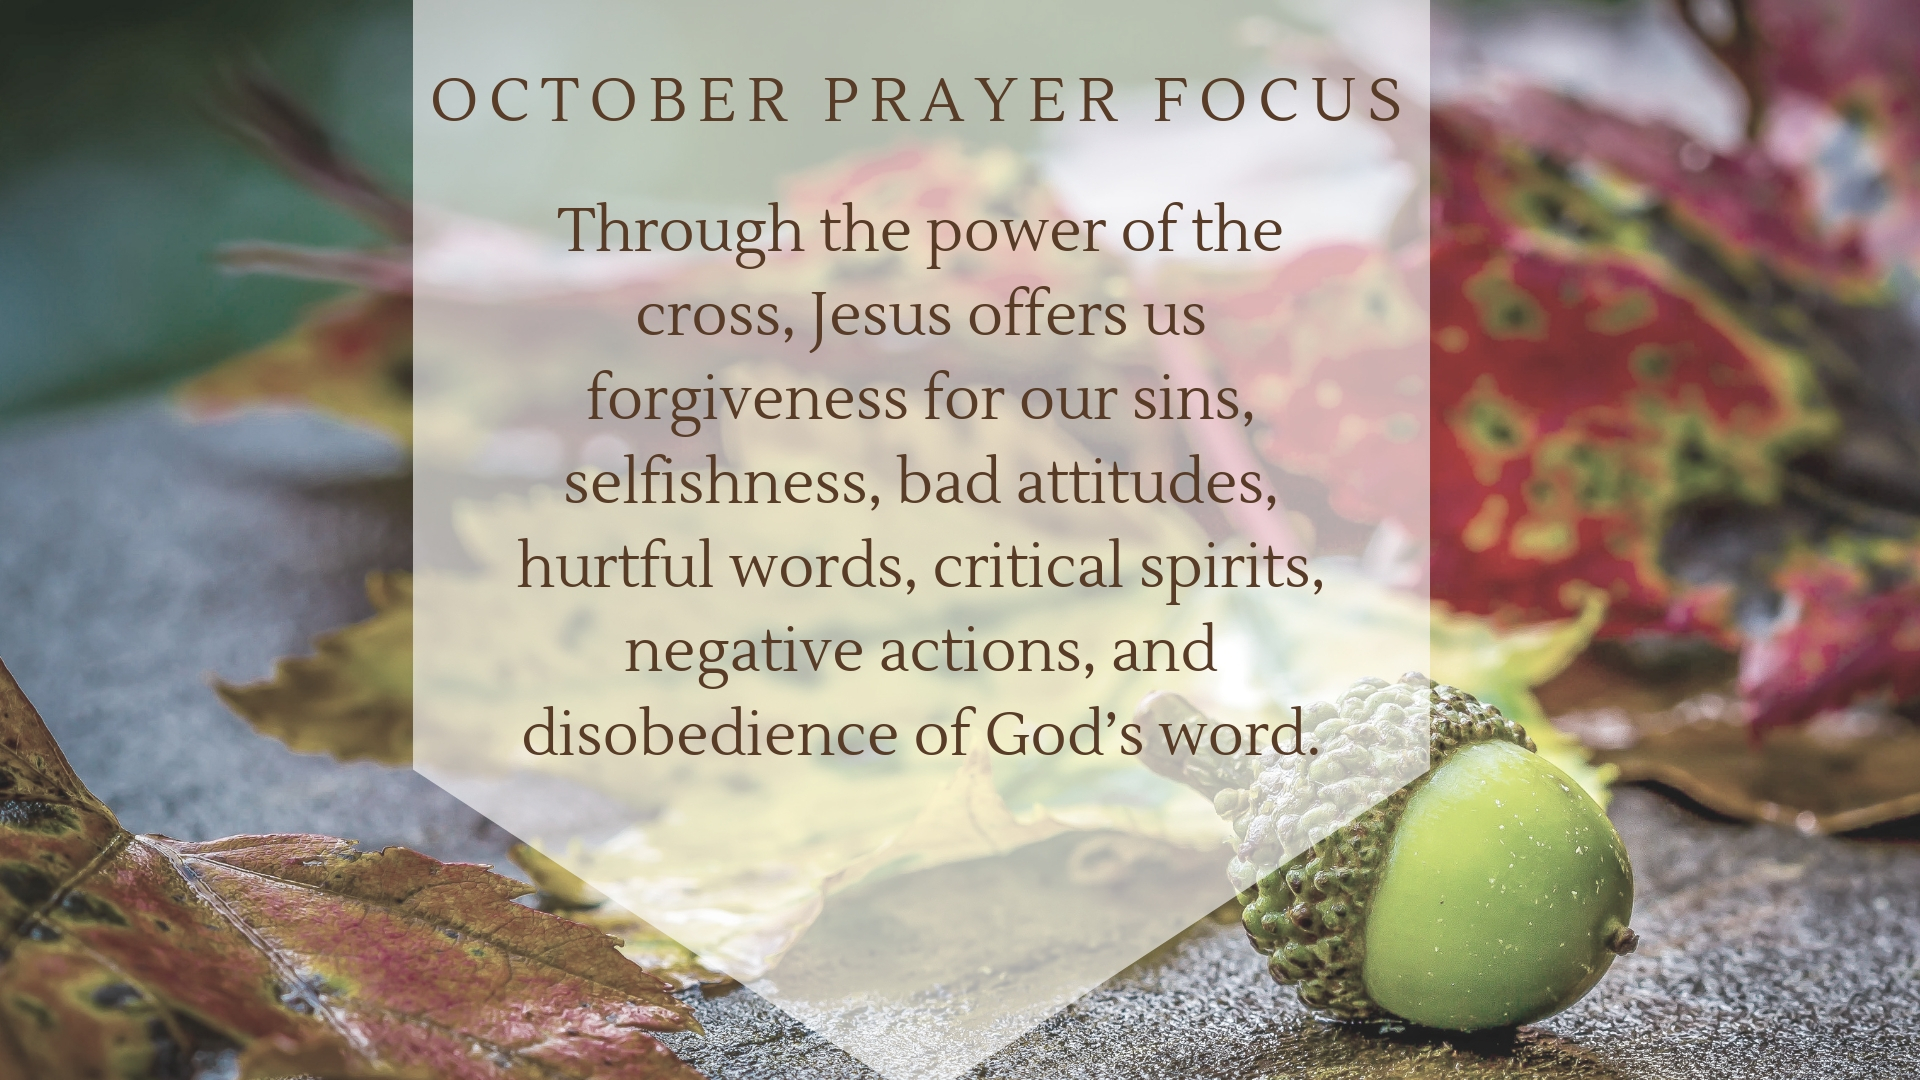 October Prayer Focus